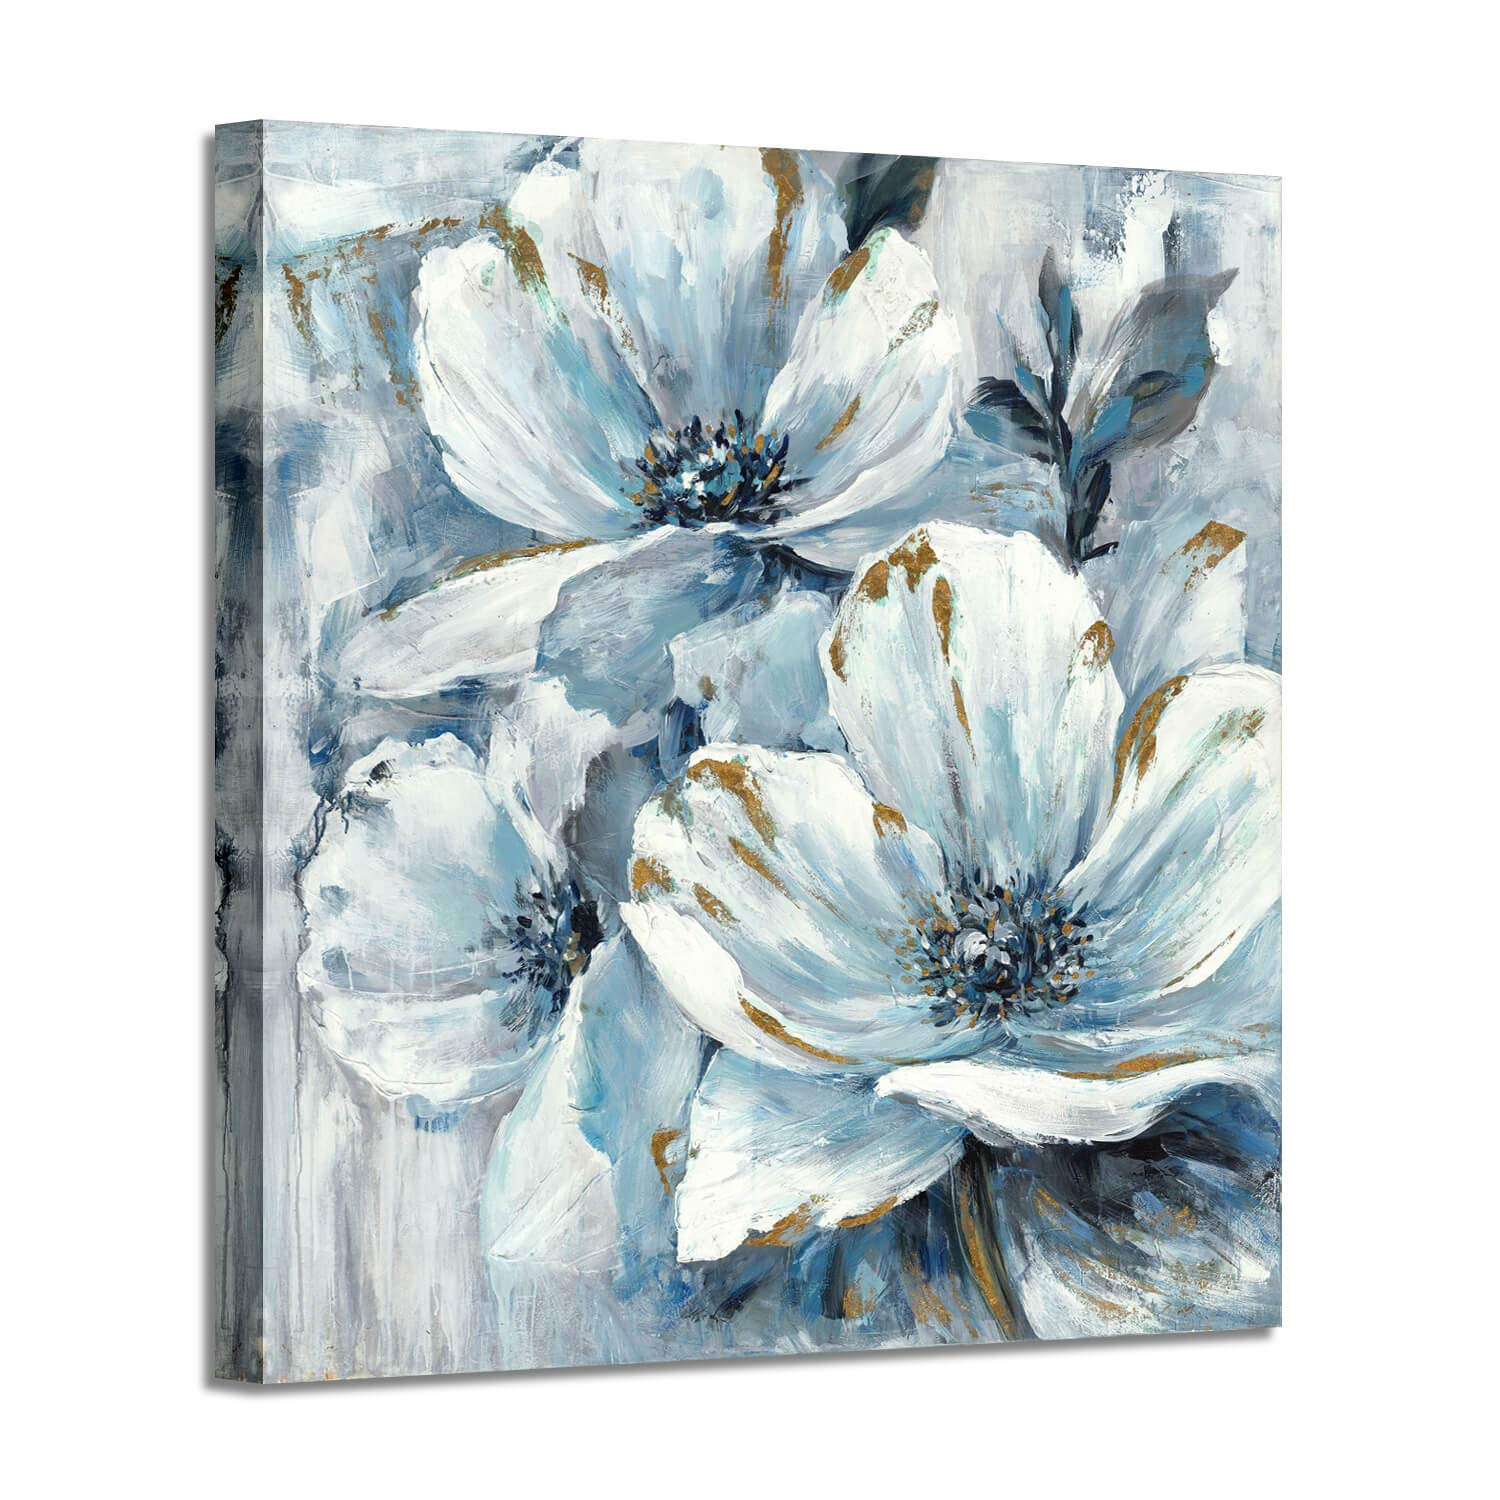 "Abstract Flower Wall Art Picture: White & Blue Lily Painting Hand Painted Artwork on Canvas for Office (24""W x 24""H,Multi-Sized)"